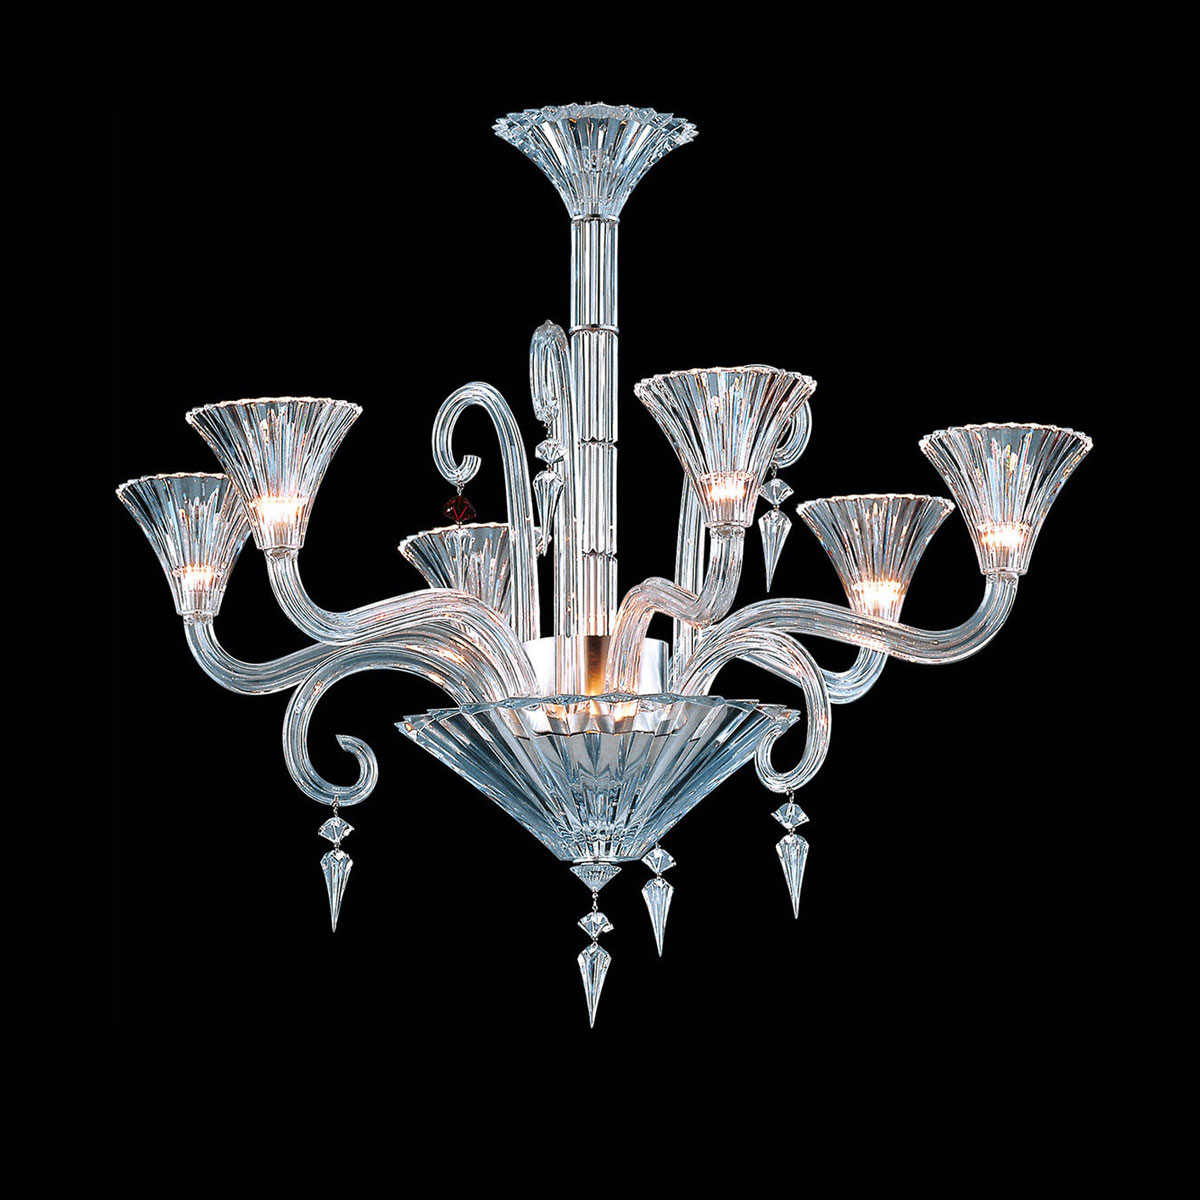 Baccarat Crystal, Mille Nuits 6 Light Chandelier, With Lighted Bowl For Hurricane